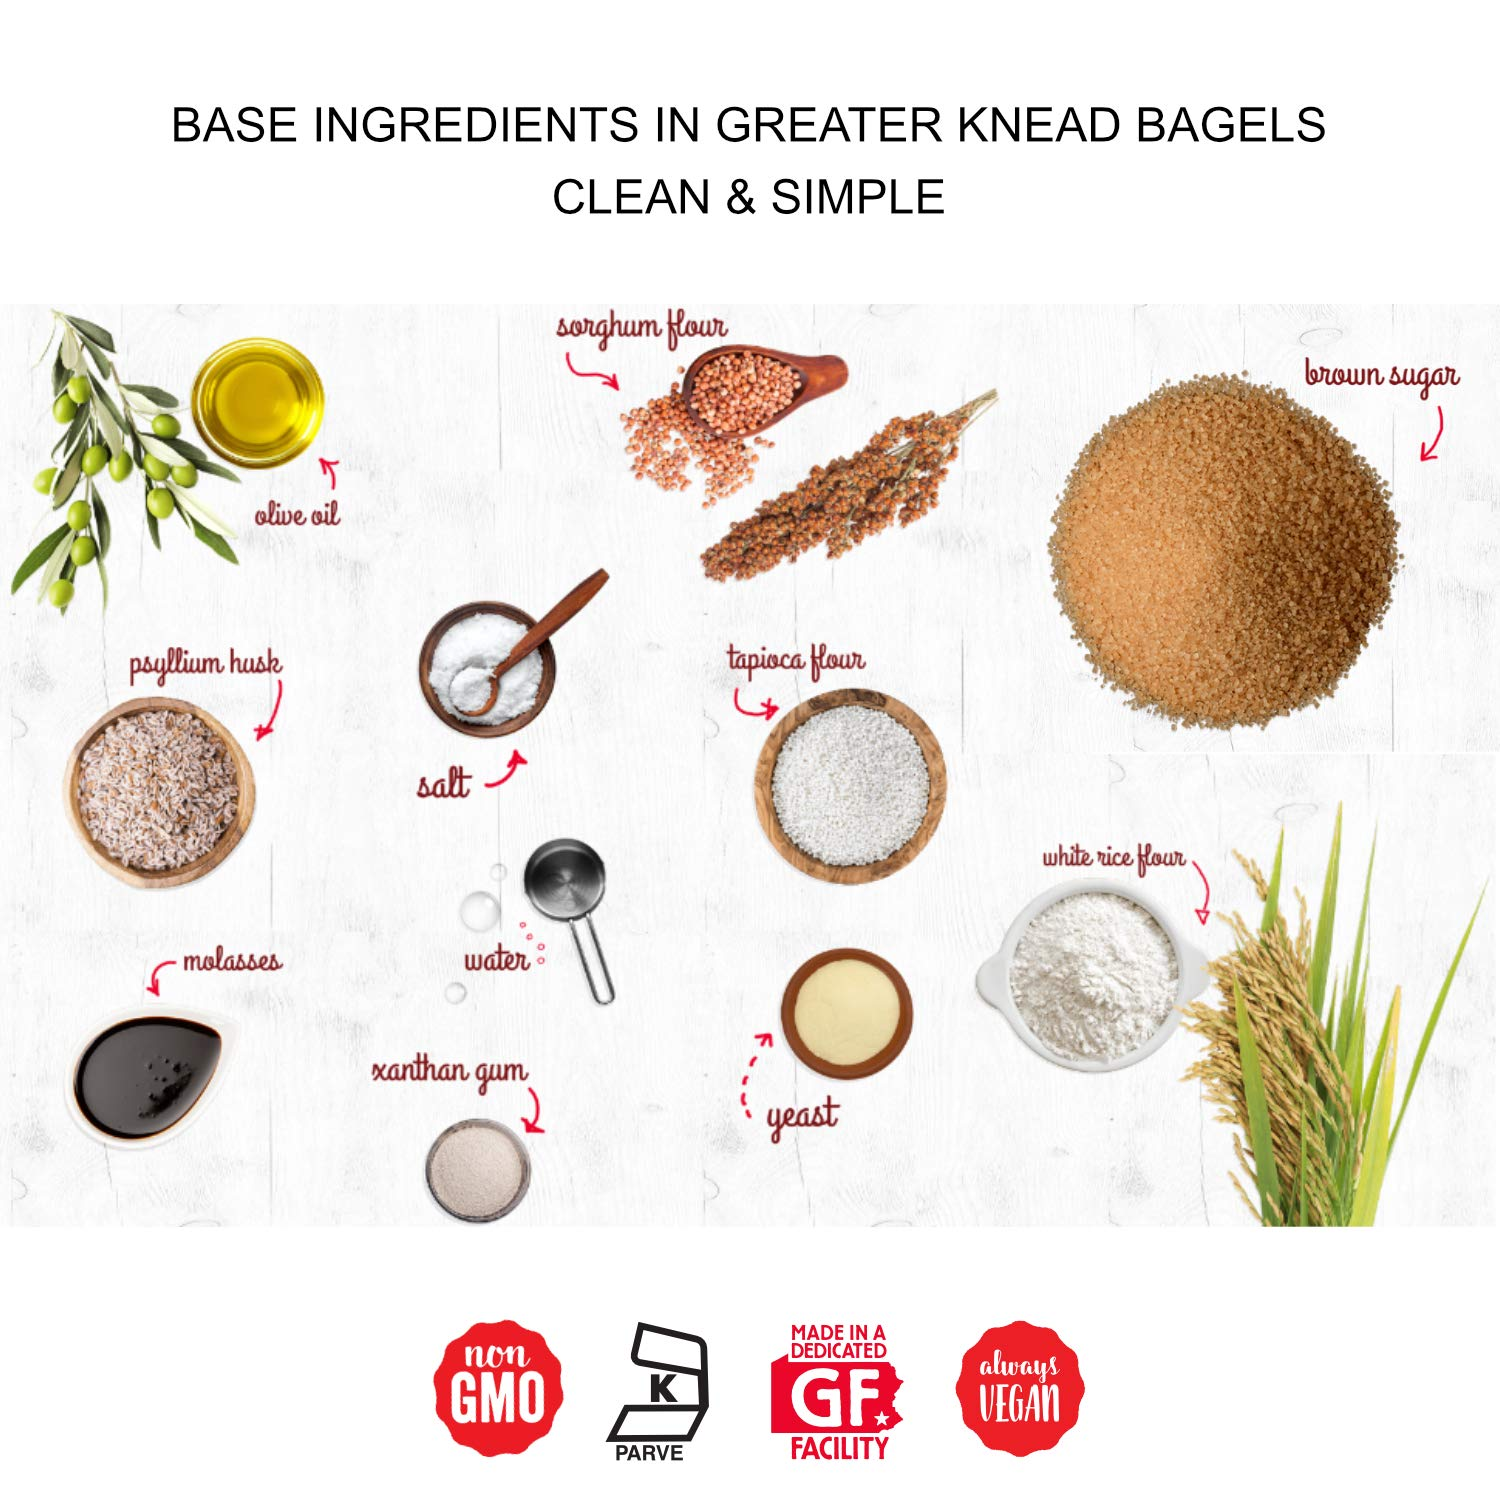 Greater Knead Gluten Free Bagel - Cinnamon Raisin - Vegan, non-GMO, Free of Wheat, Nuts, Soy, Peanuts, Tree Nuts (12 bagels) by The Greater Knead (Image #7)